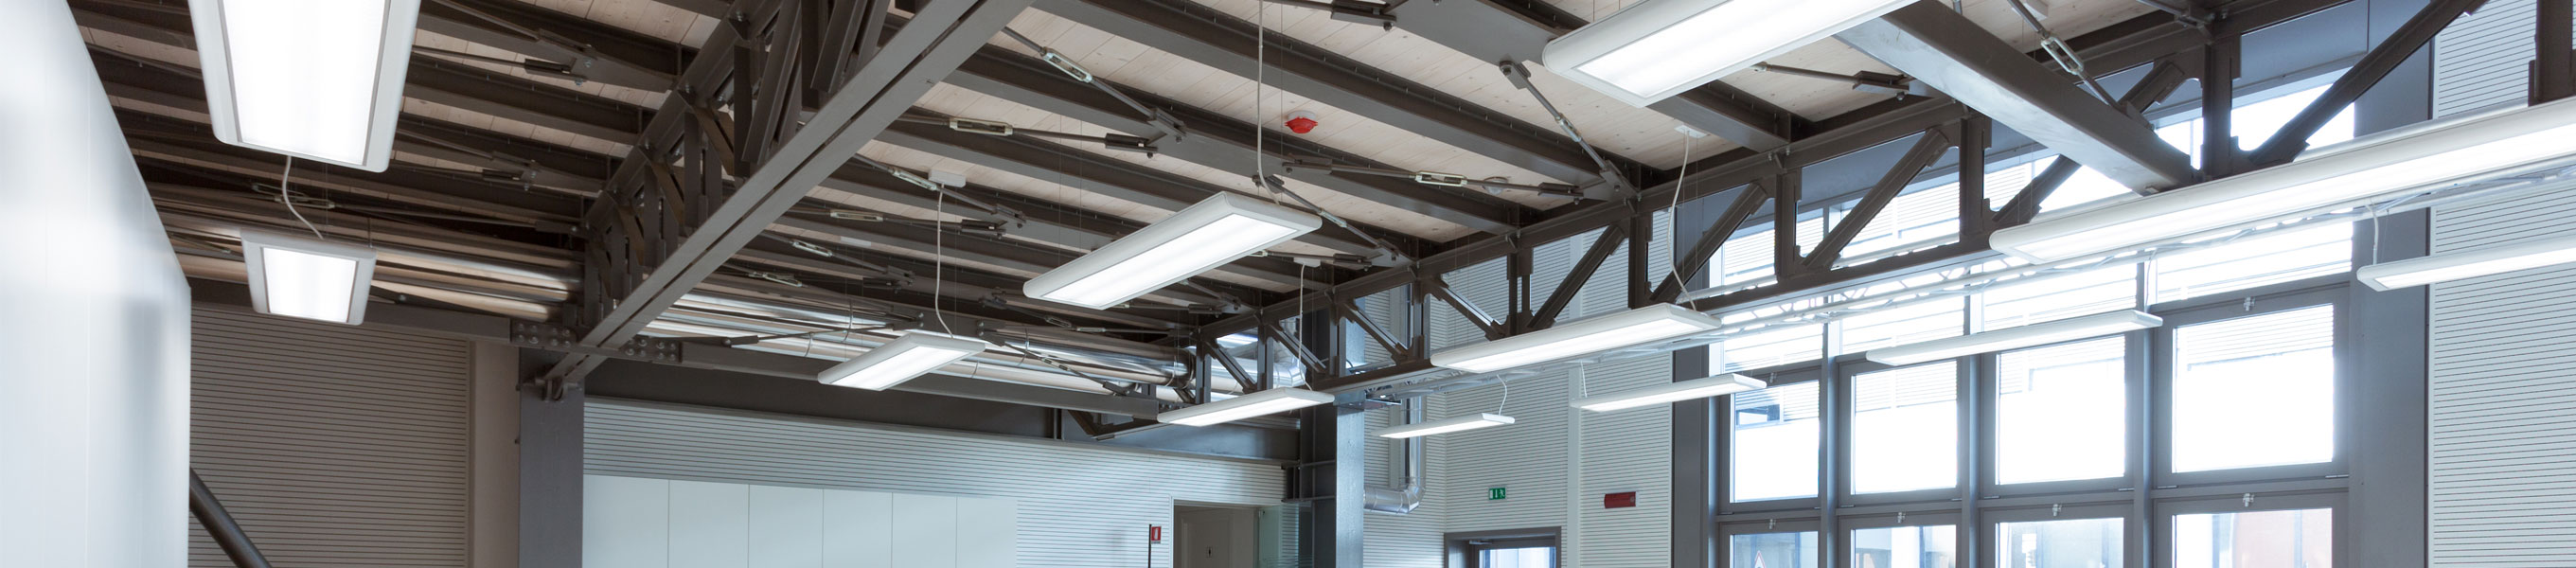 meko commercial electrical services header 1